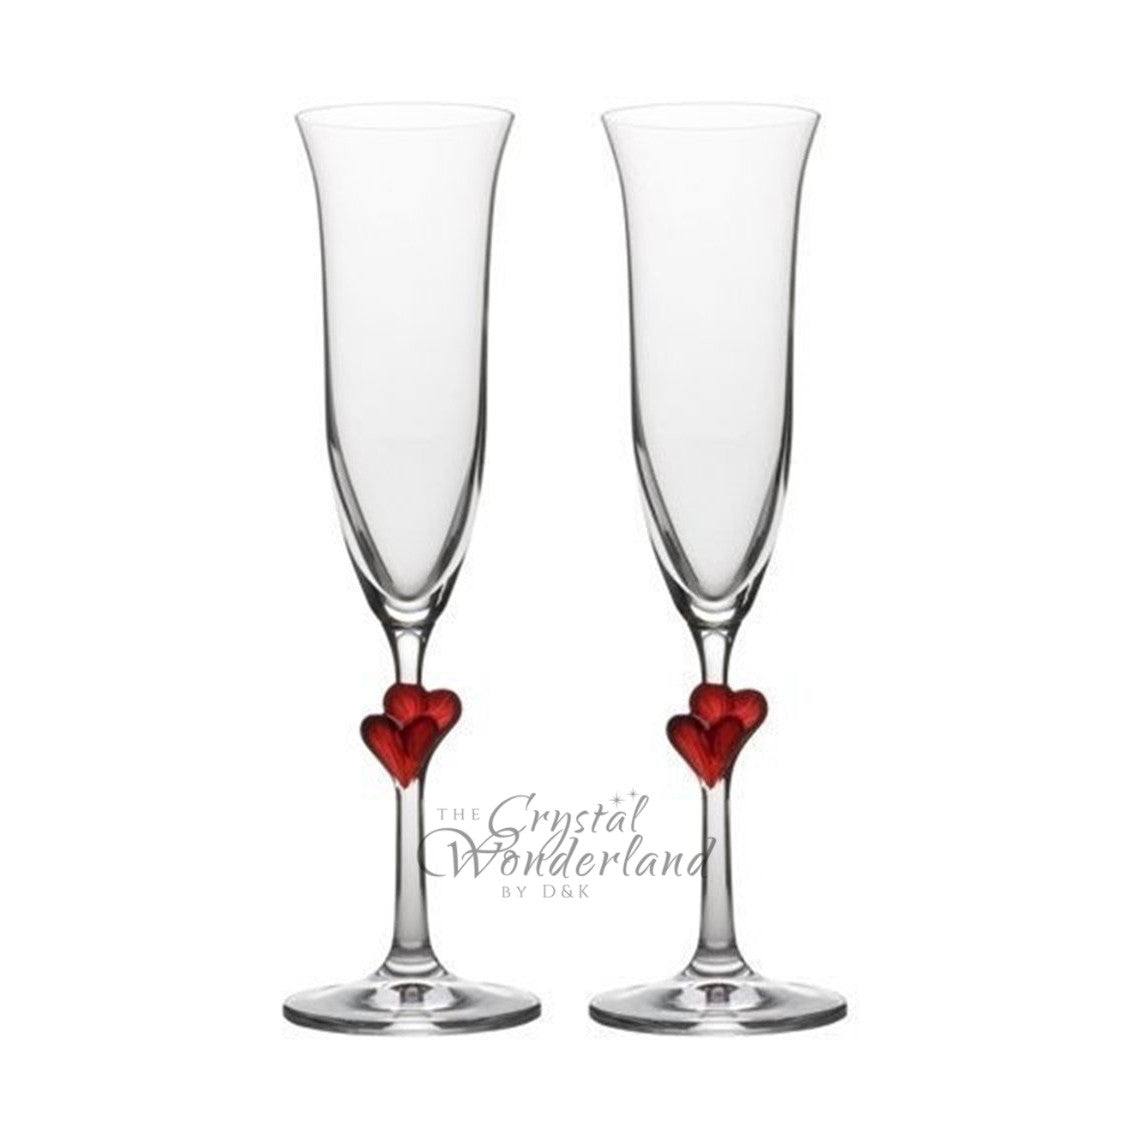 Passionate Love Champagne Flutes with Red Hearts, Pair - The Crystal Wonderland - 1